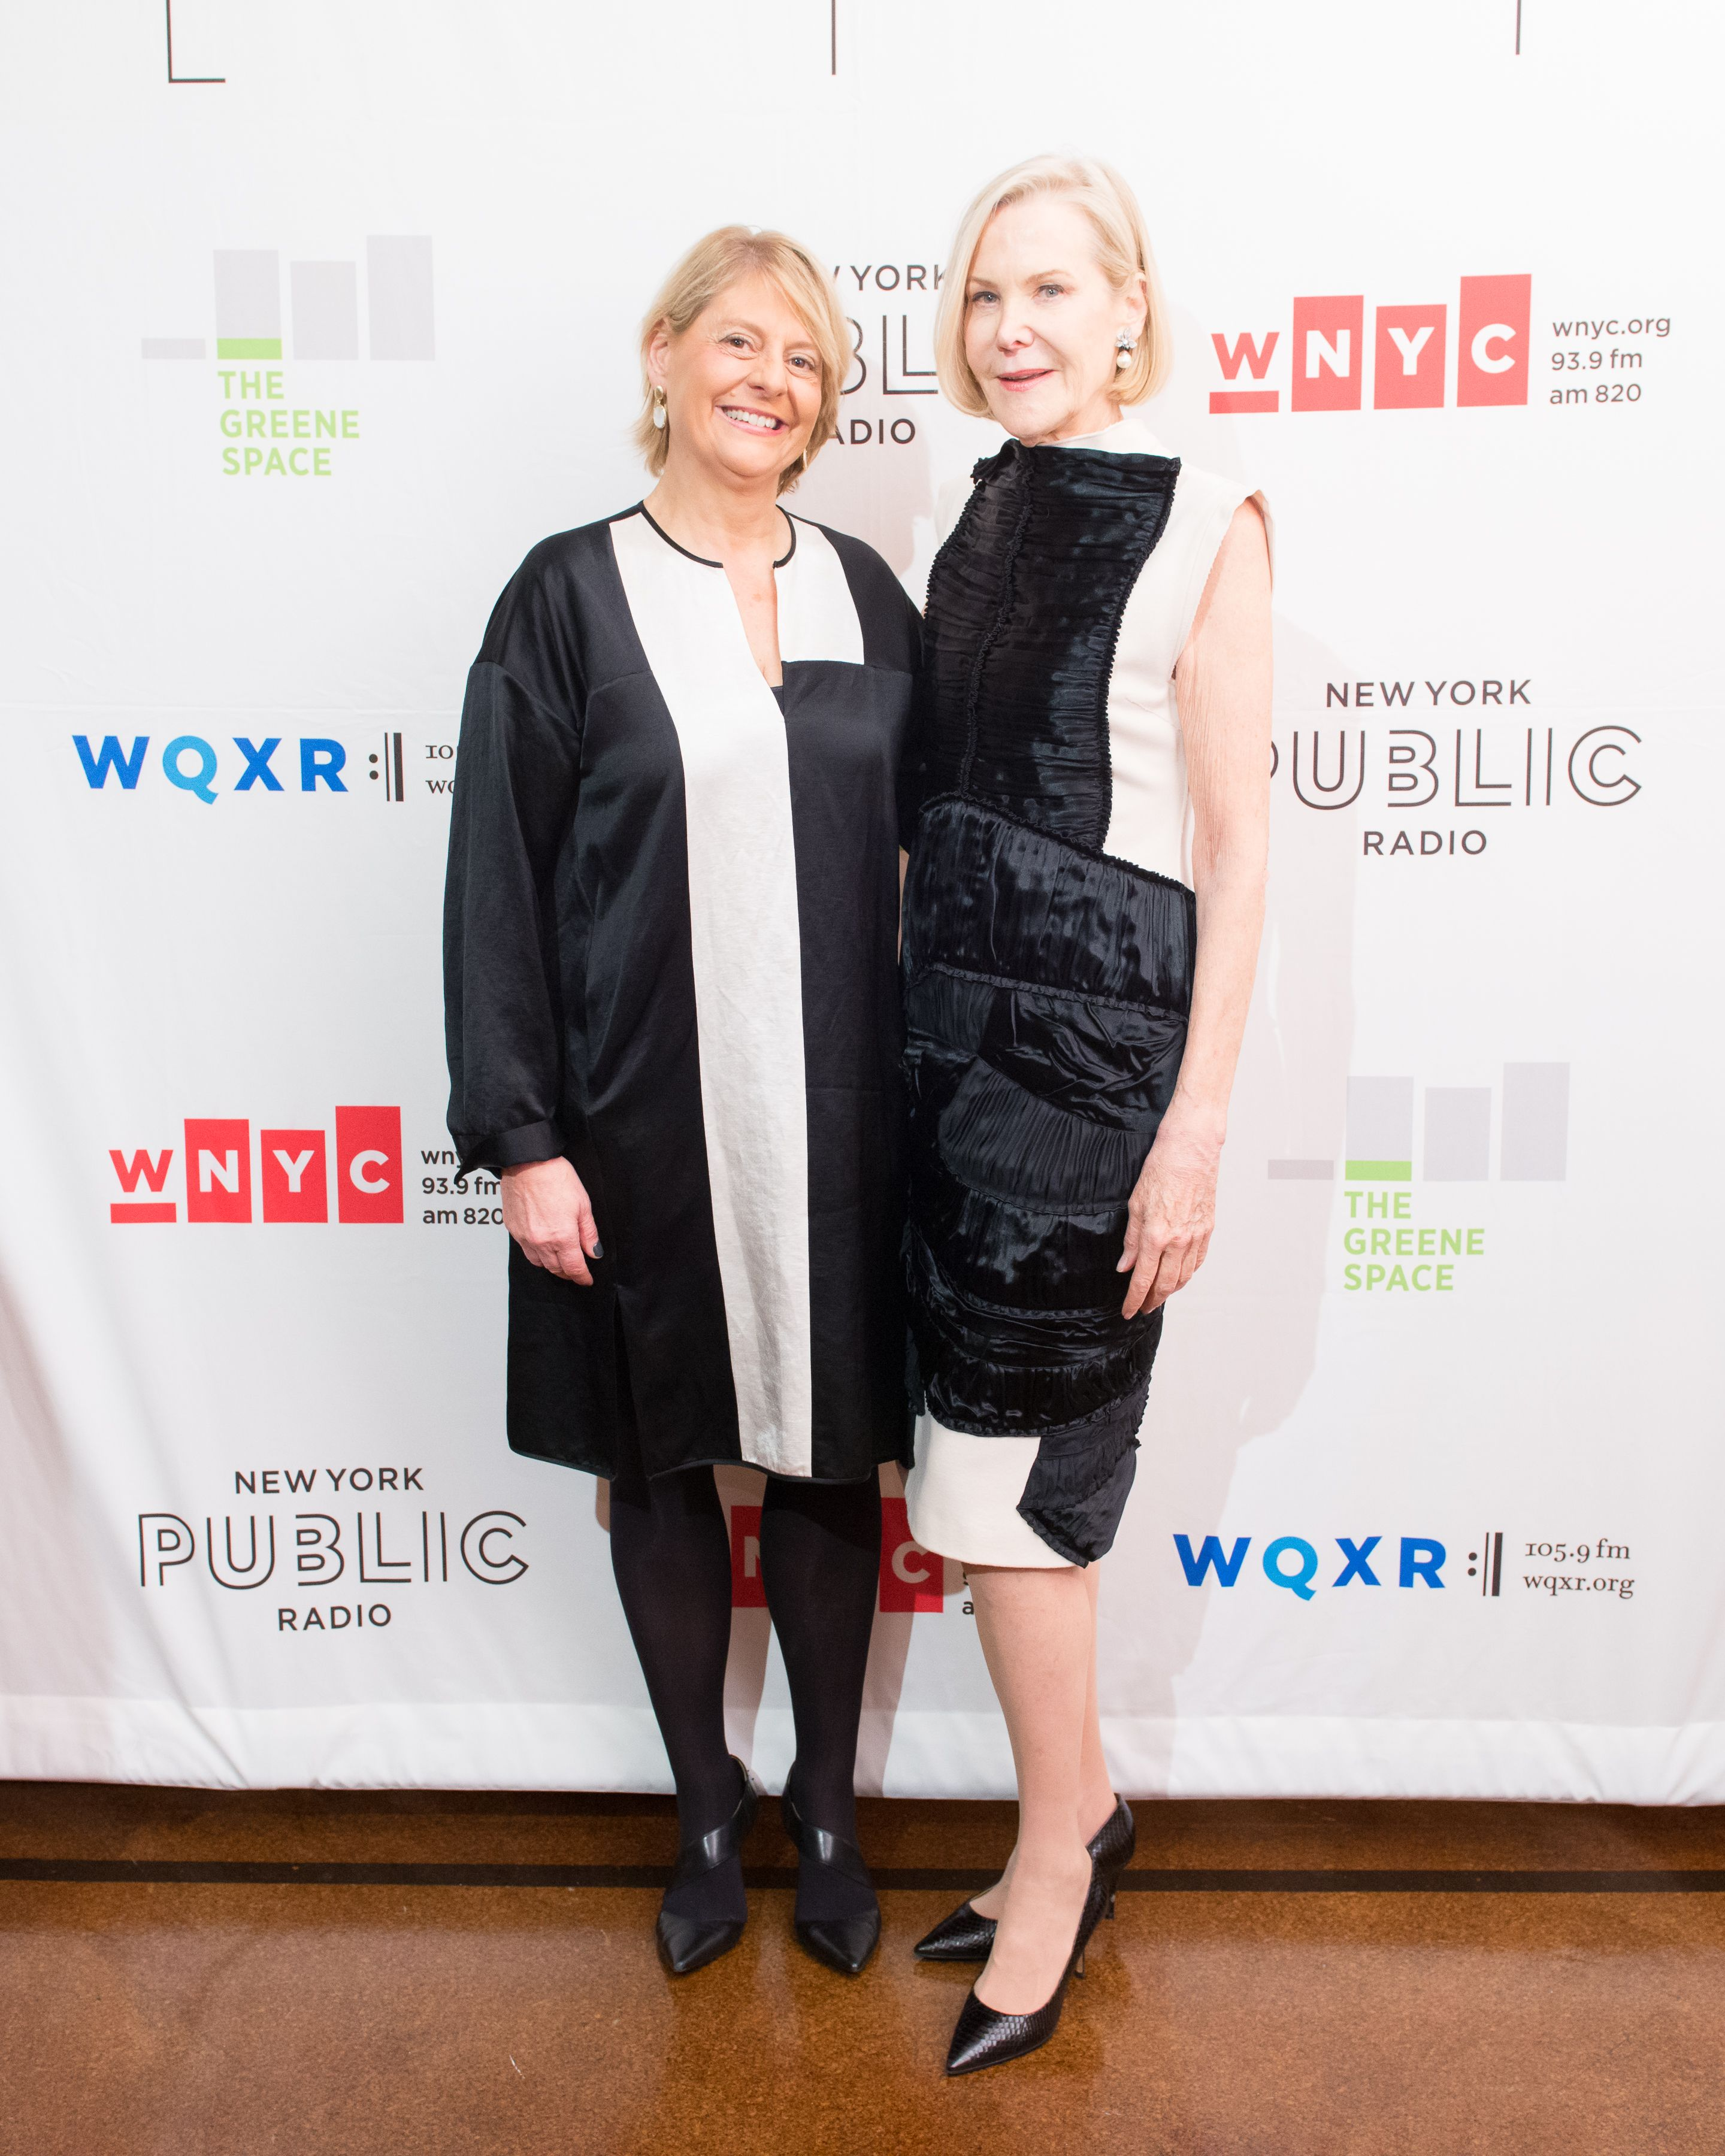 New York Public Radio President and CEO Laura Walker with Christina McInerney, CEO of the Jerome L. Greene Foundation.